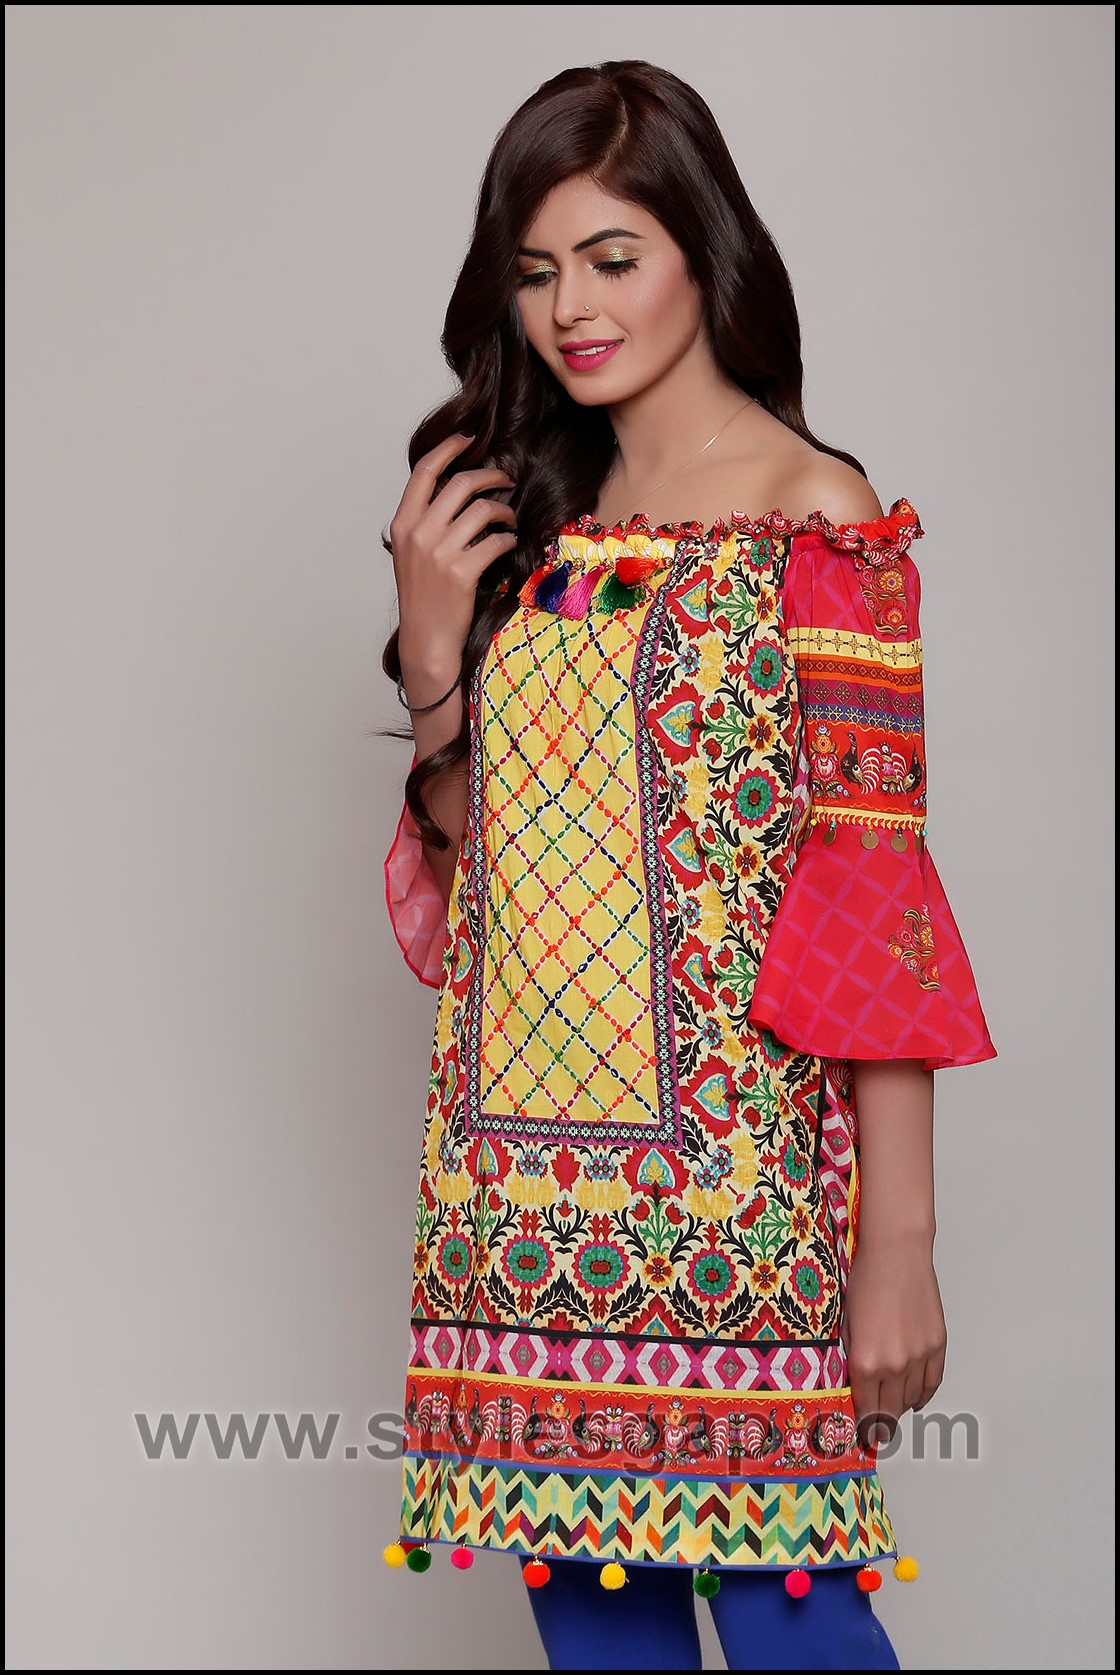 Latest Fashion Trend In Saree: Summer Fashion Lawn Kurti Designs Trends Latest Collection